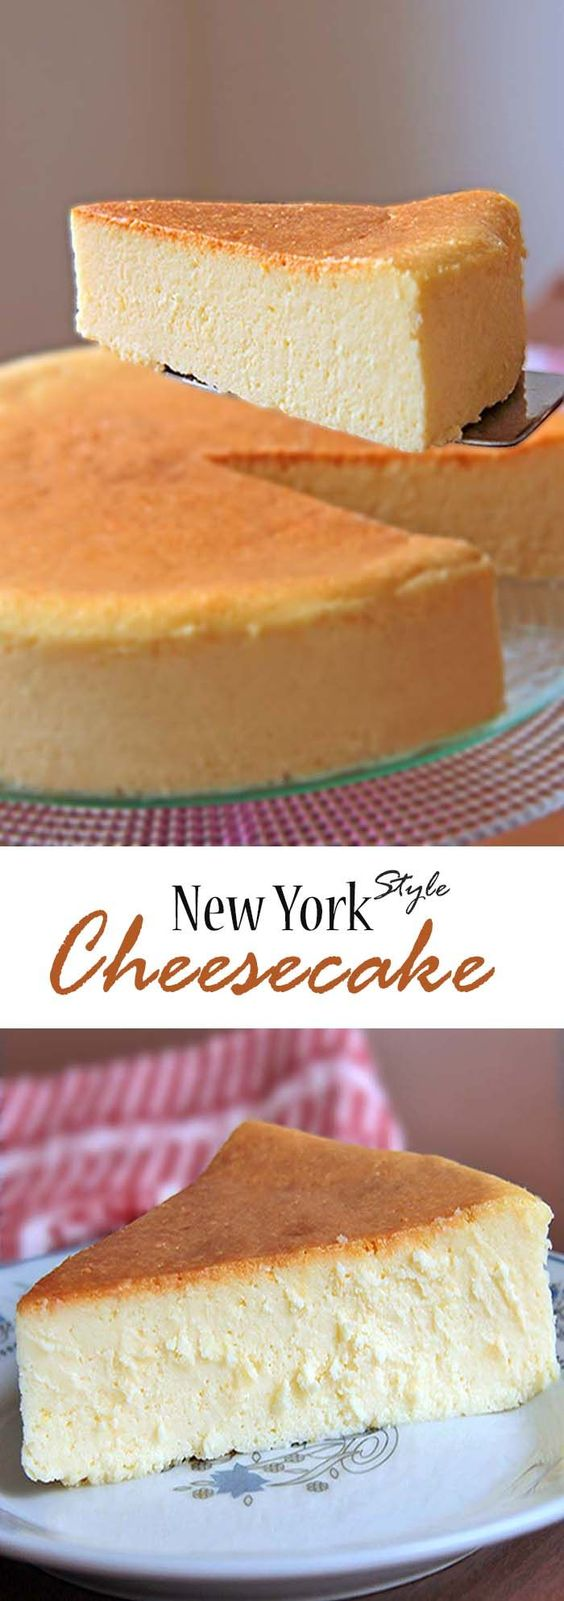 Classic New York Style Cheesecake Recipe via Sugar Apron - New York Style Cheesecake is creamy smooth, lightly sweet, with a touch of lemon. Suffice it to say, my search for the perfect cheesecake recipe ends here.